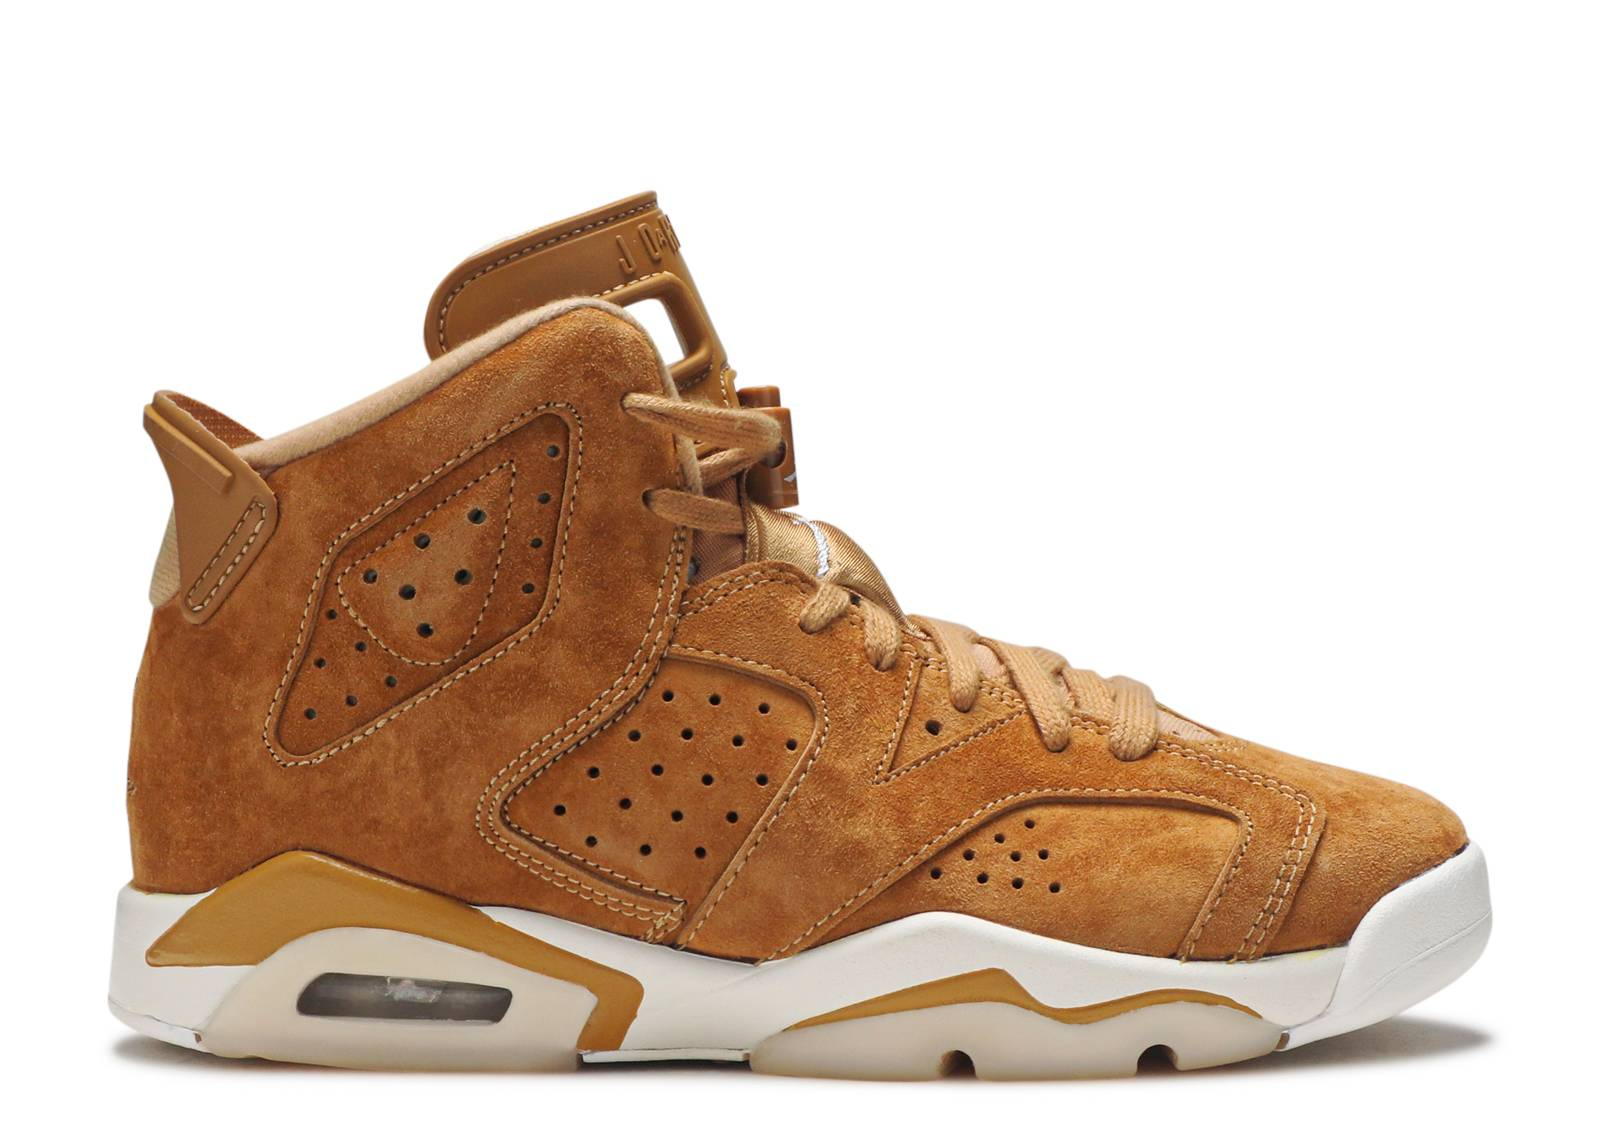 premium selection 39527 94674 air jordan. air jordan 6 retro bg